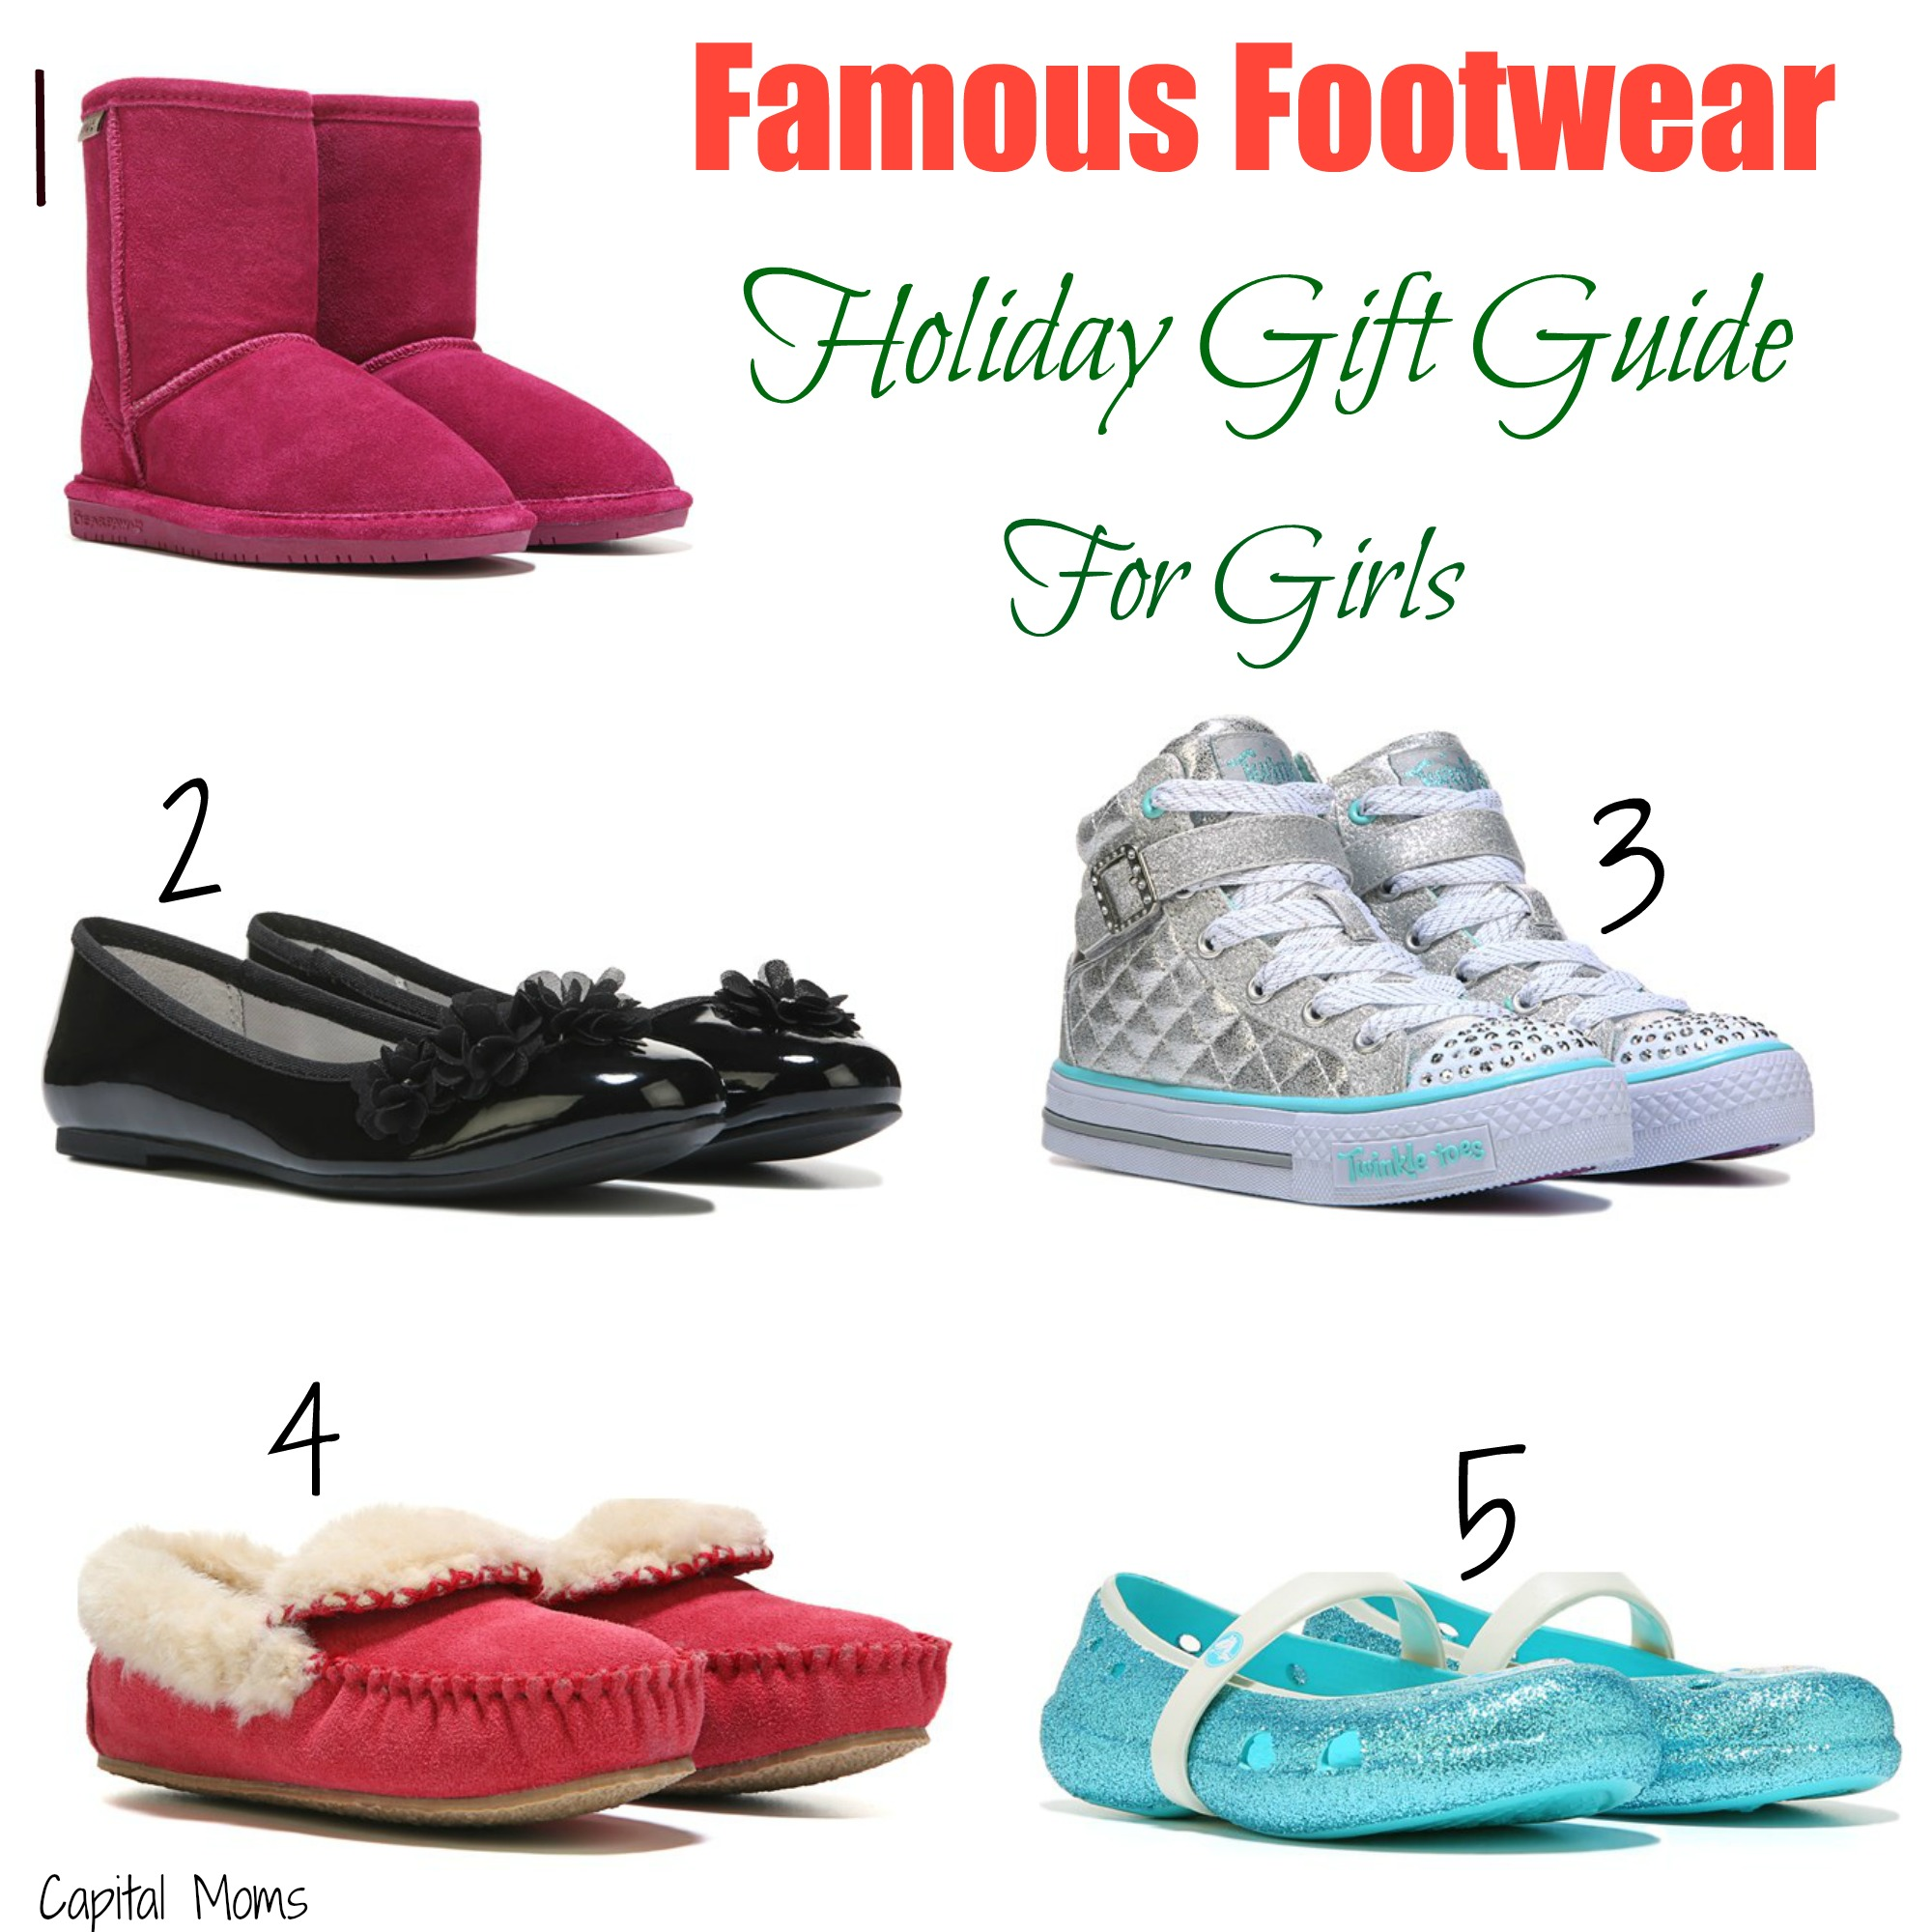 Holiday Guide to Girls' Fashion at Famous Footwear